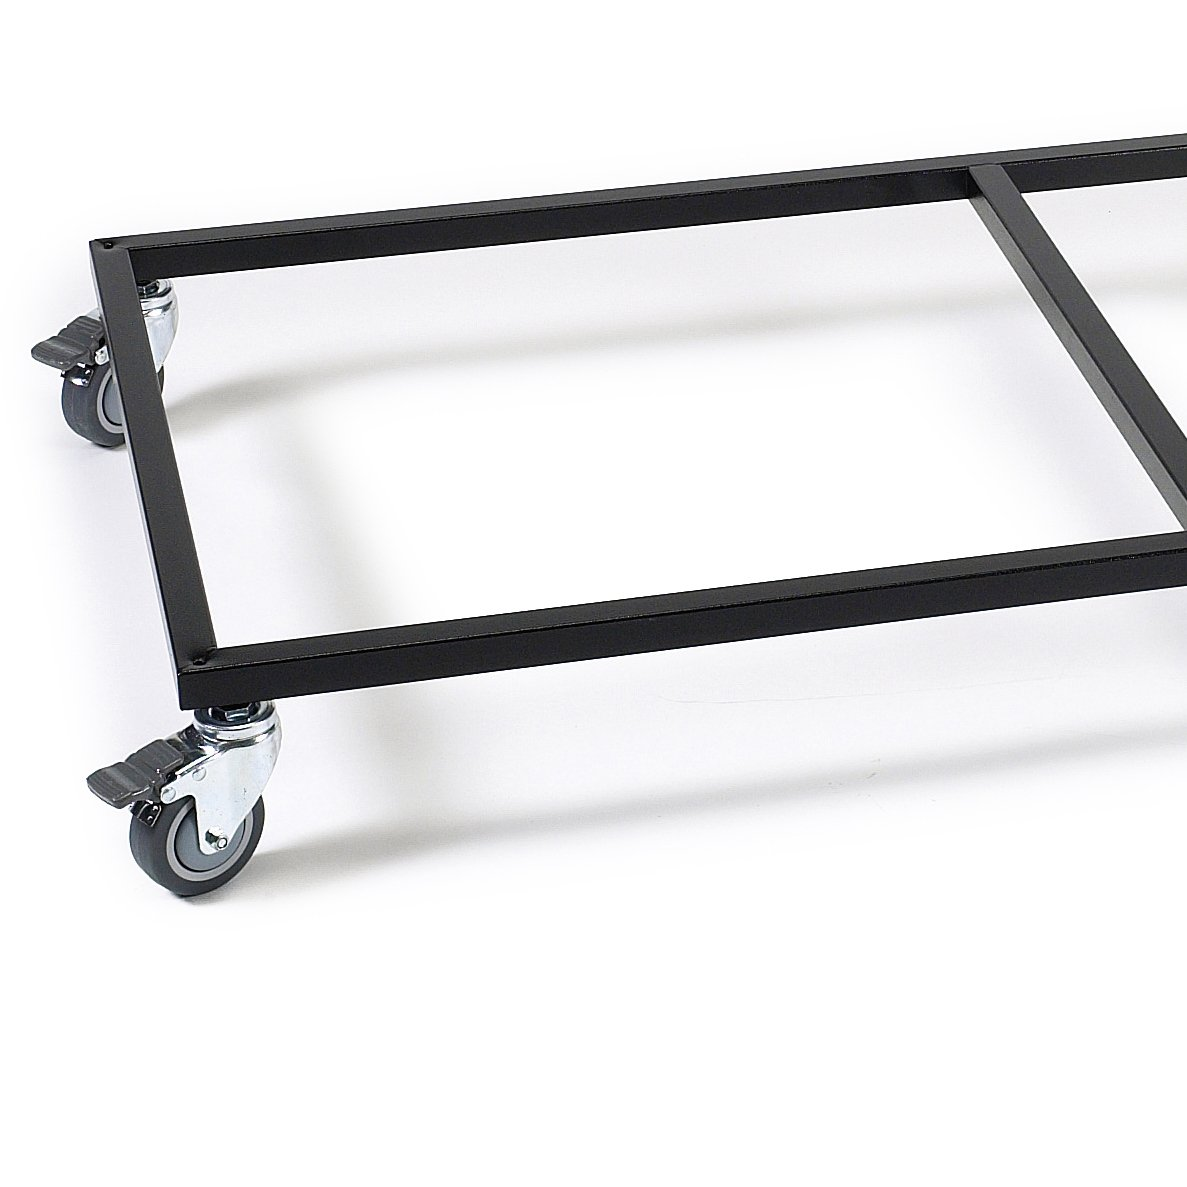 ProSelect 48-Inch Modular Pet Cage Base with Wheels, Black